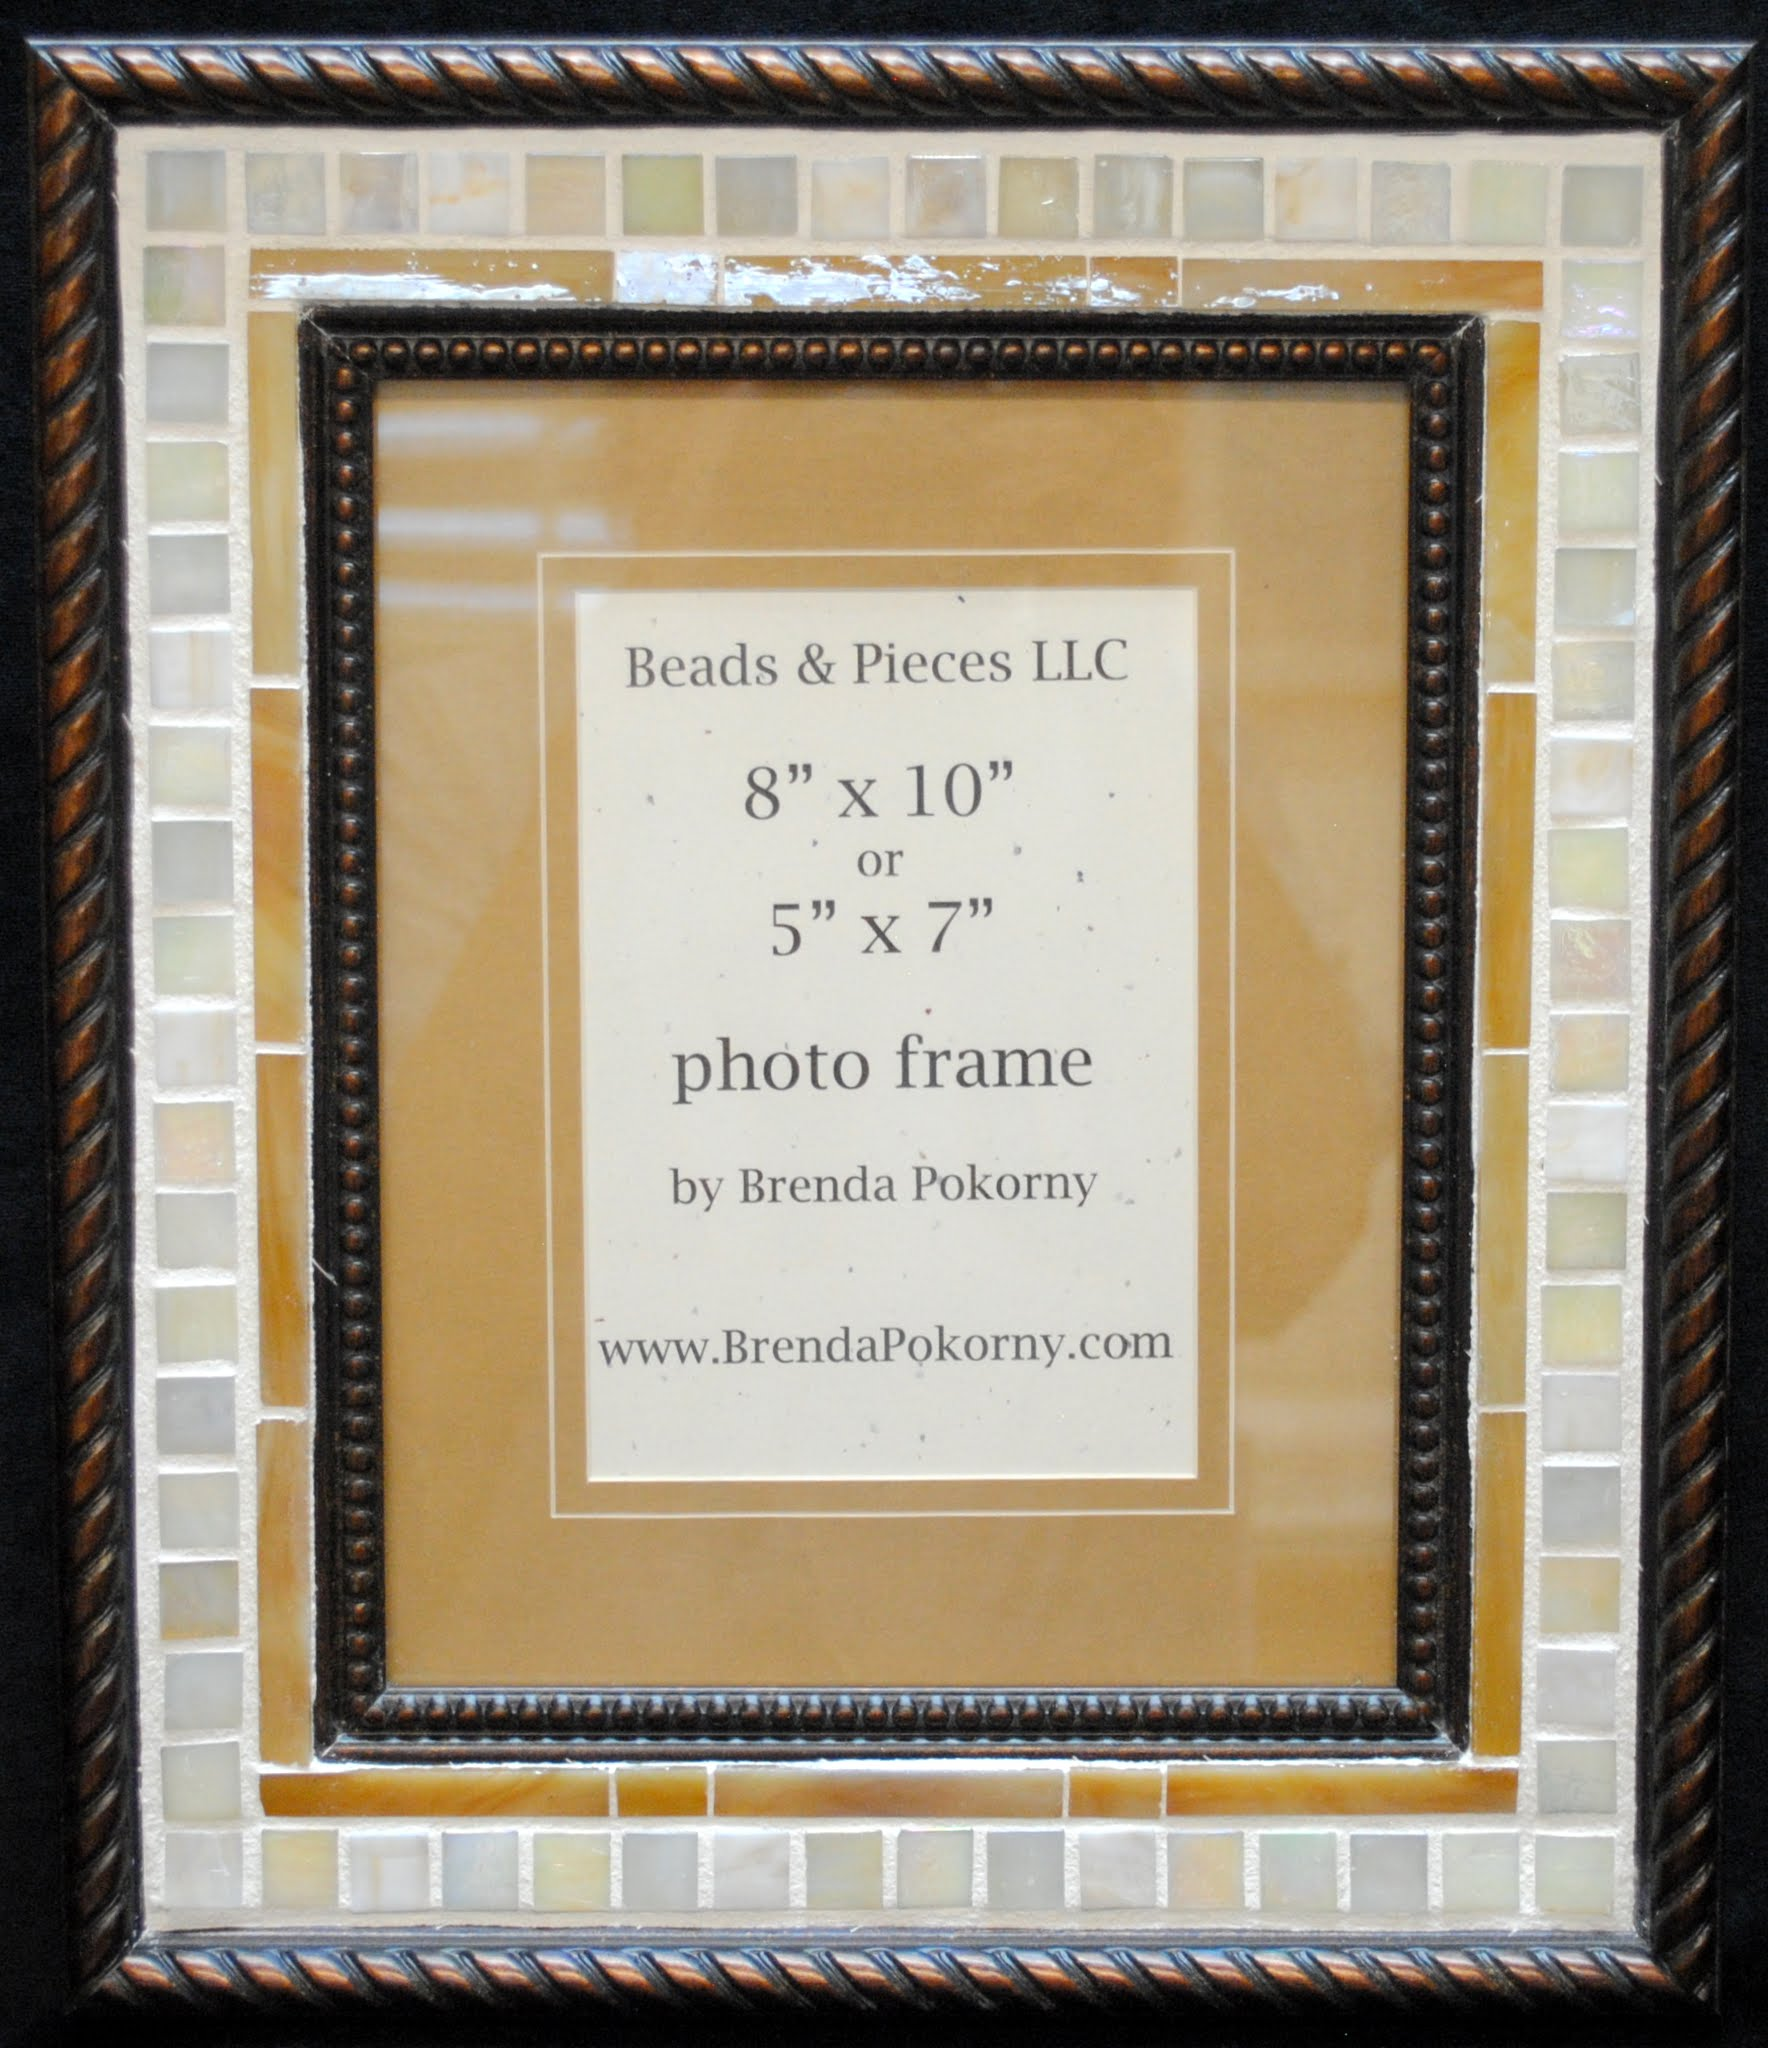 Mosaic Photo Frames & Mirrors - Beads & Pieces